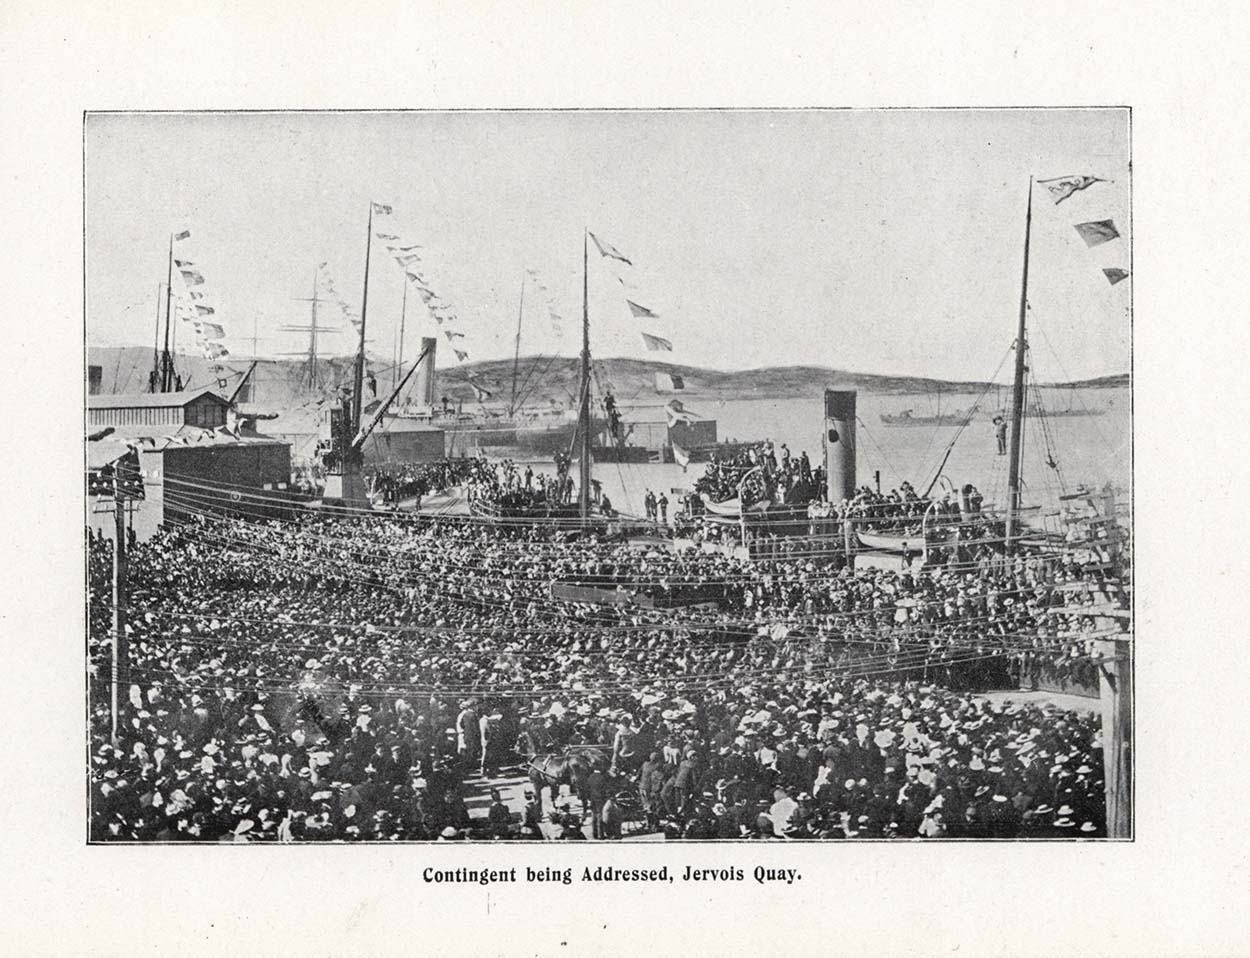 Black and white photo showing military in Jervois Quay, Wellington